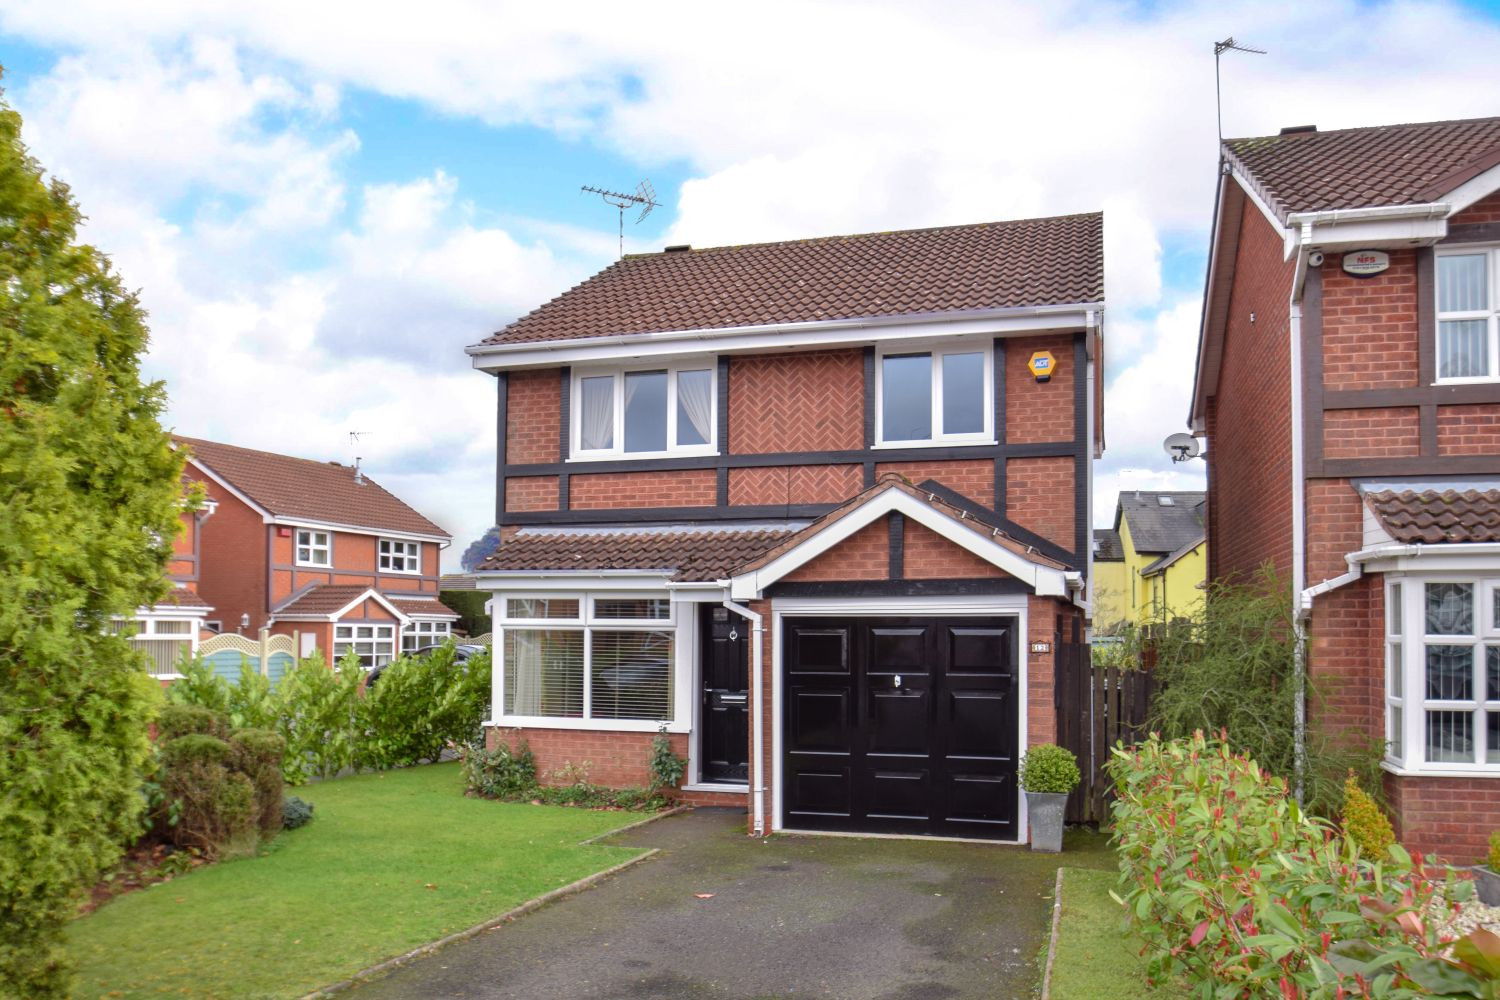 3 bed detached for sale in Foxes Close, Blackwell, B60 1